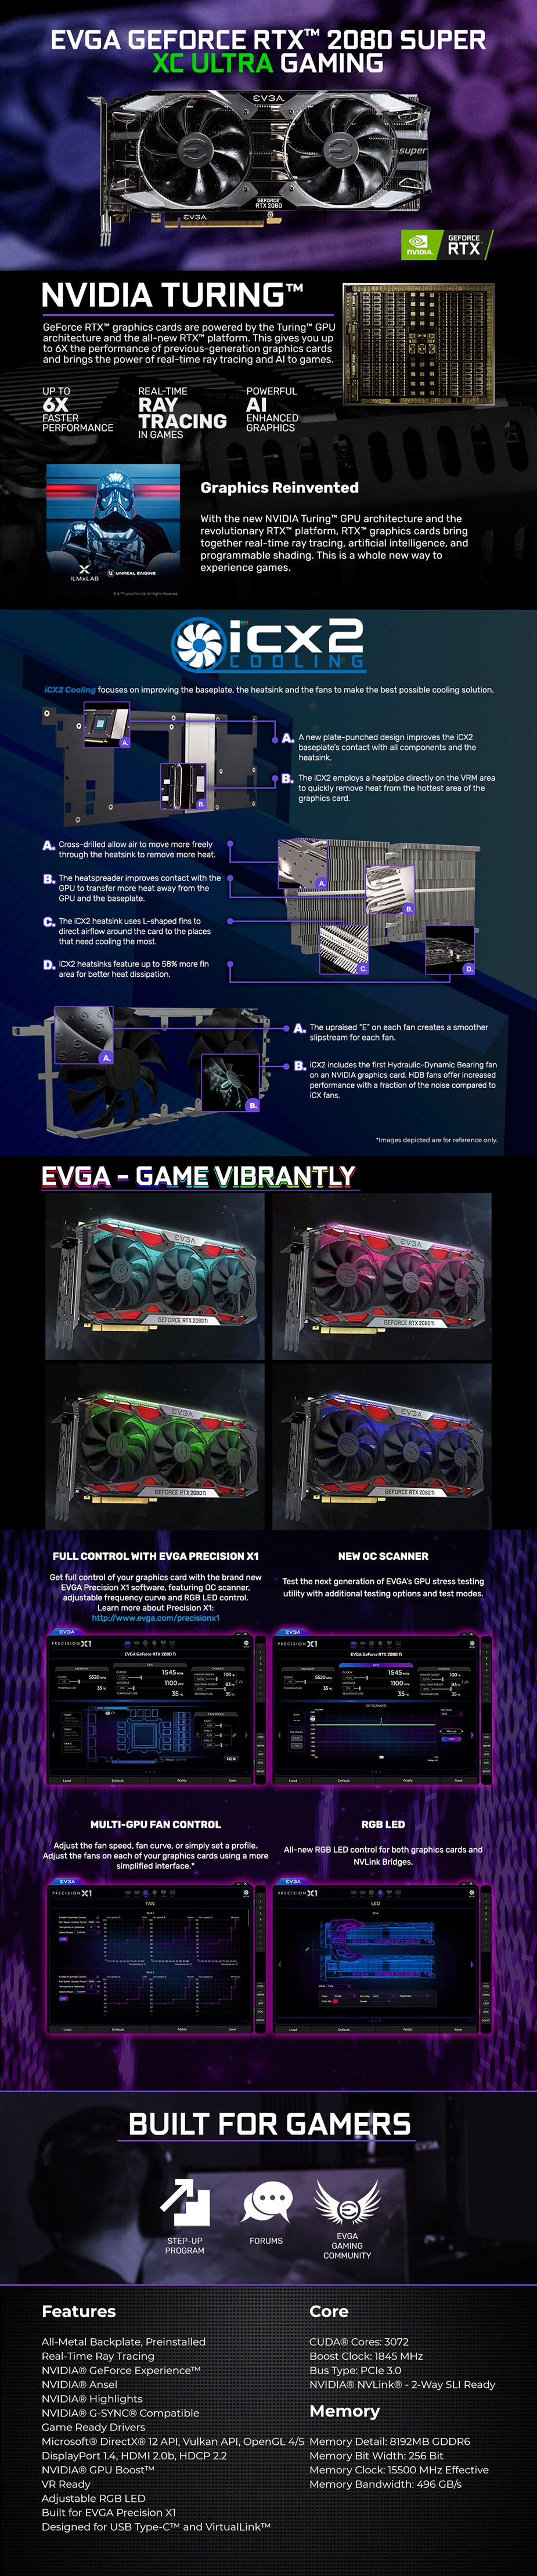 EVGA GeForce RTX 2080 SUPER XC ULTRA GAMING 8GB Video Card - Overview 1